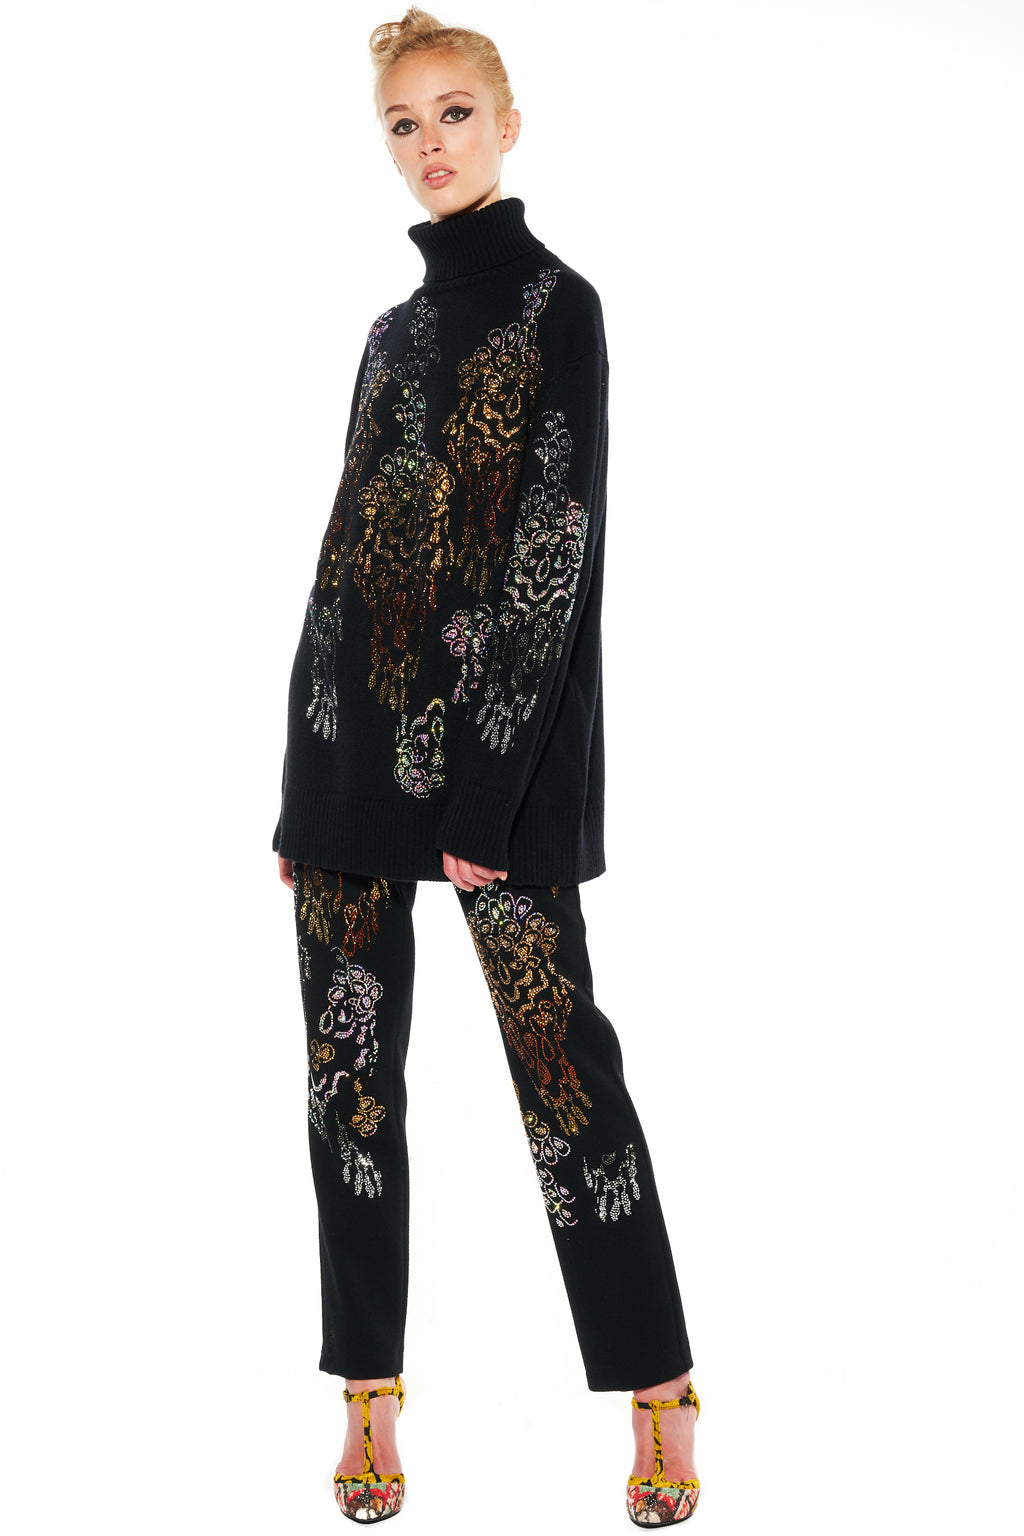 """PICASSO'S FLOWER"" TURTLENECK SWEATER - Women's Knits - Libertine"